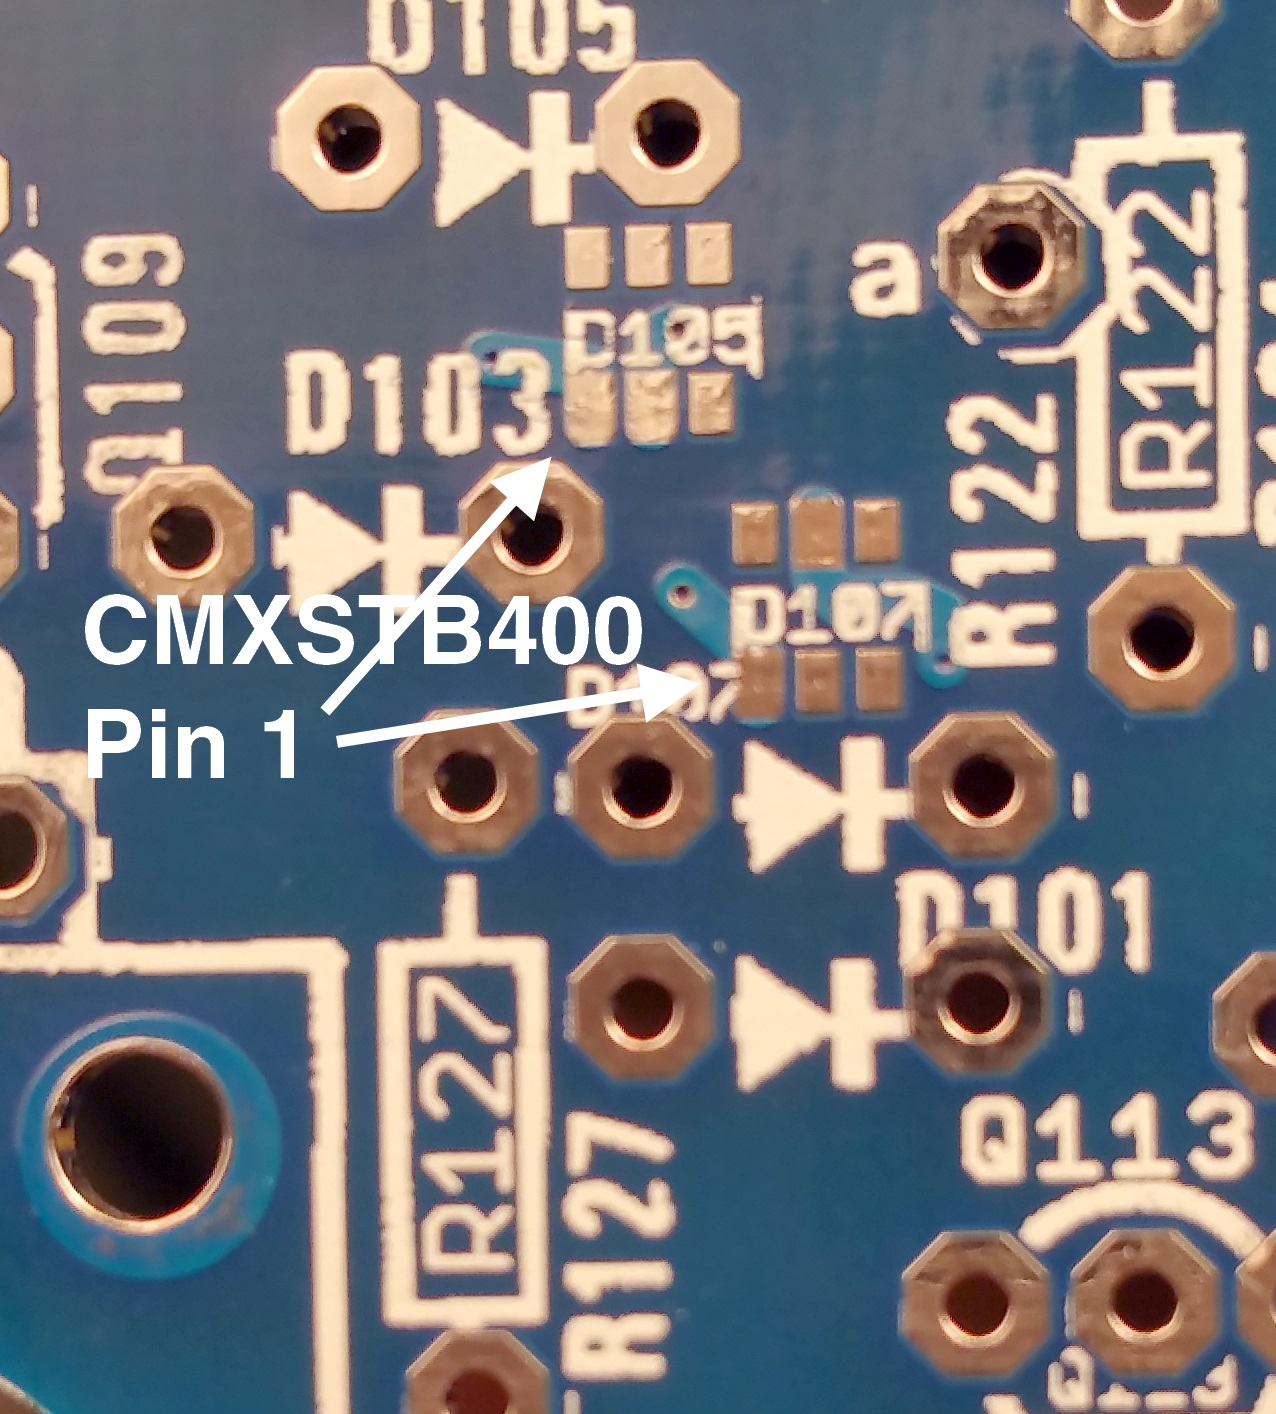 GFA-565 and GFA-585 Circuit Board replacement notes